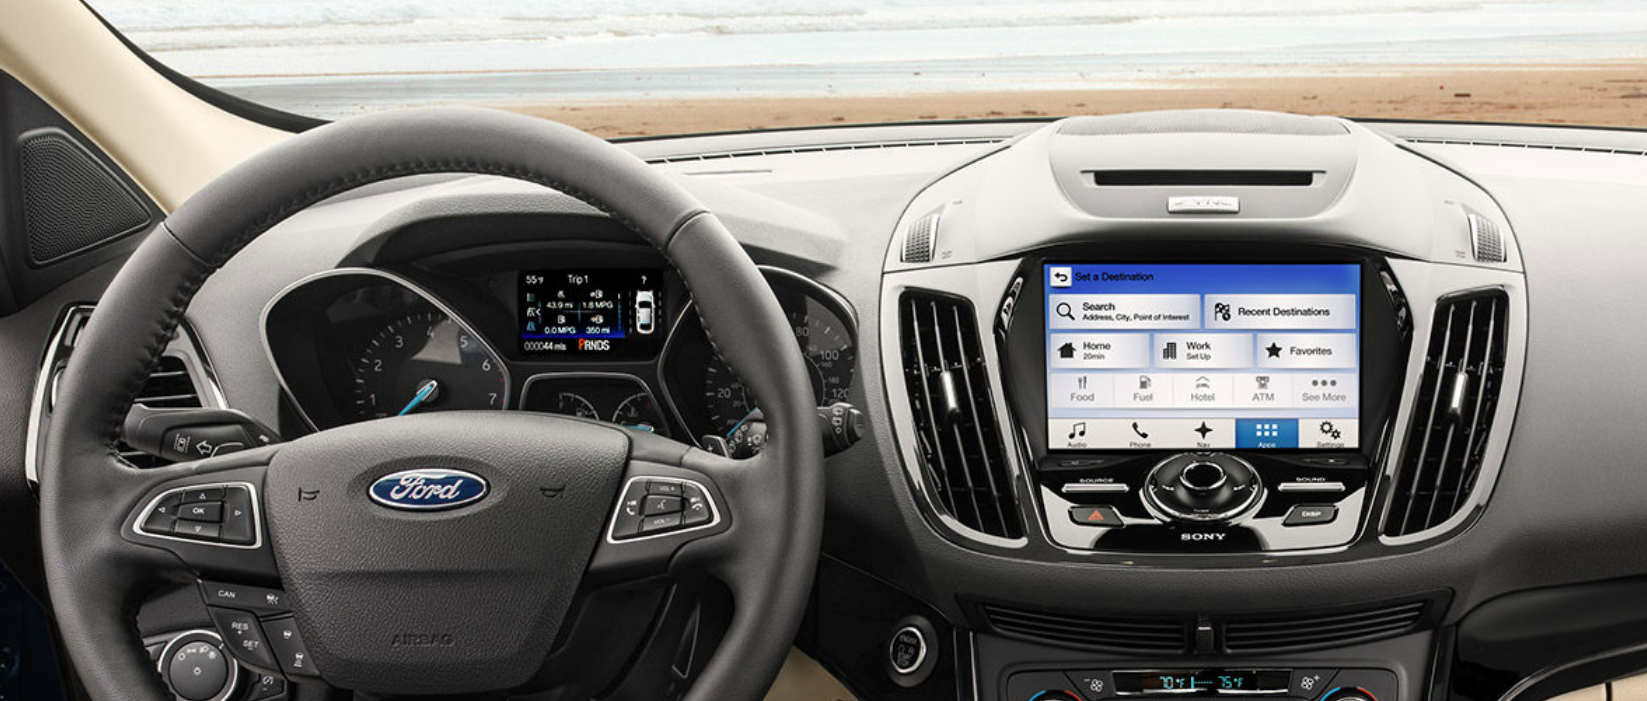 Valley Chevy - Top-Rated SUVs to Buy: Ford Escape - Steering Wheel